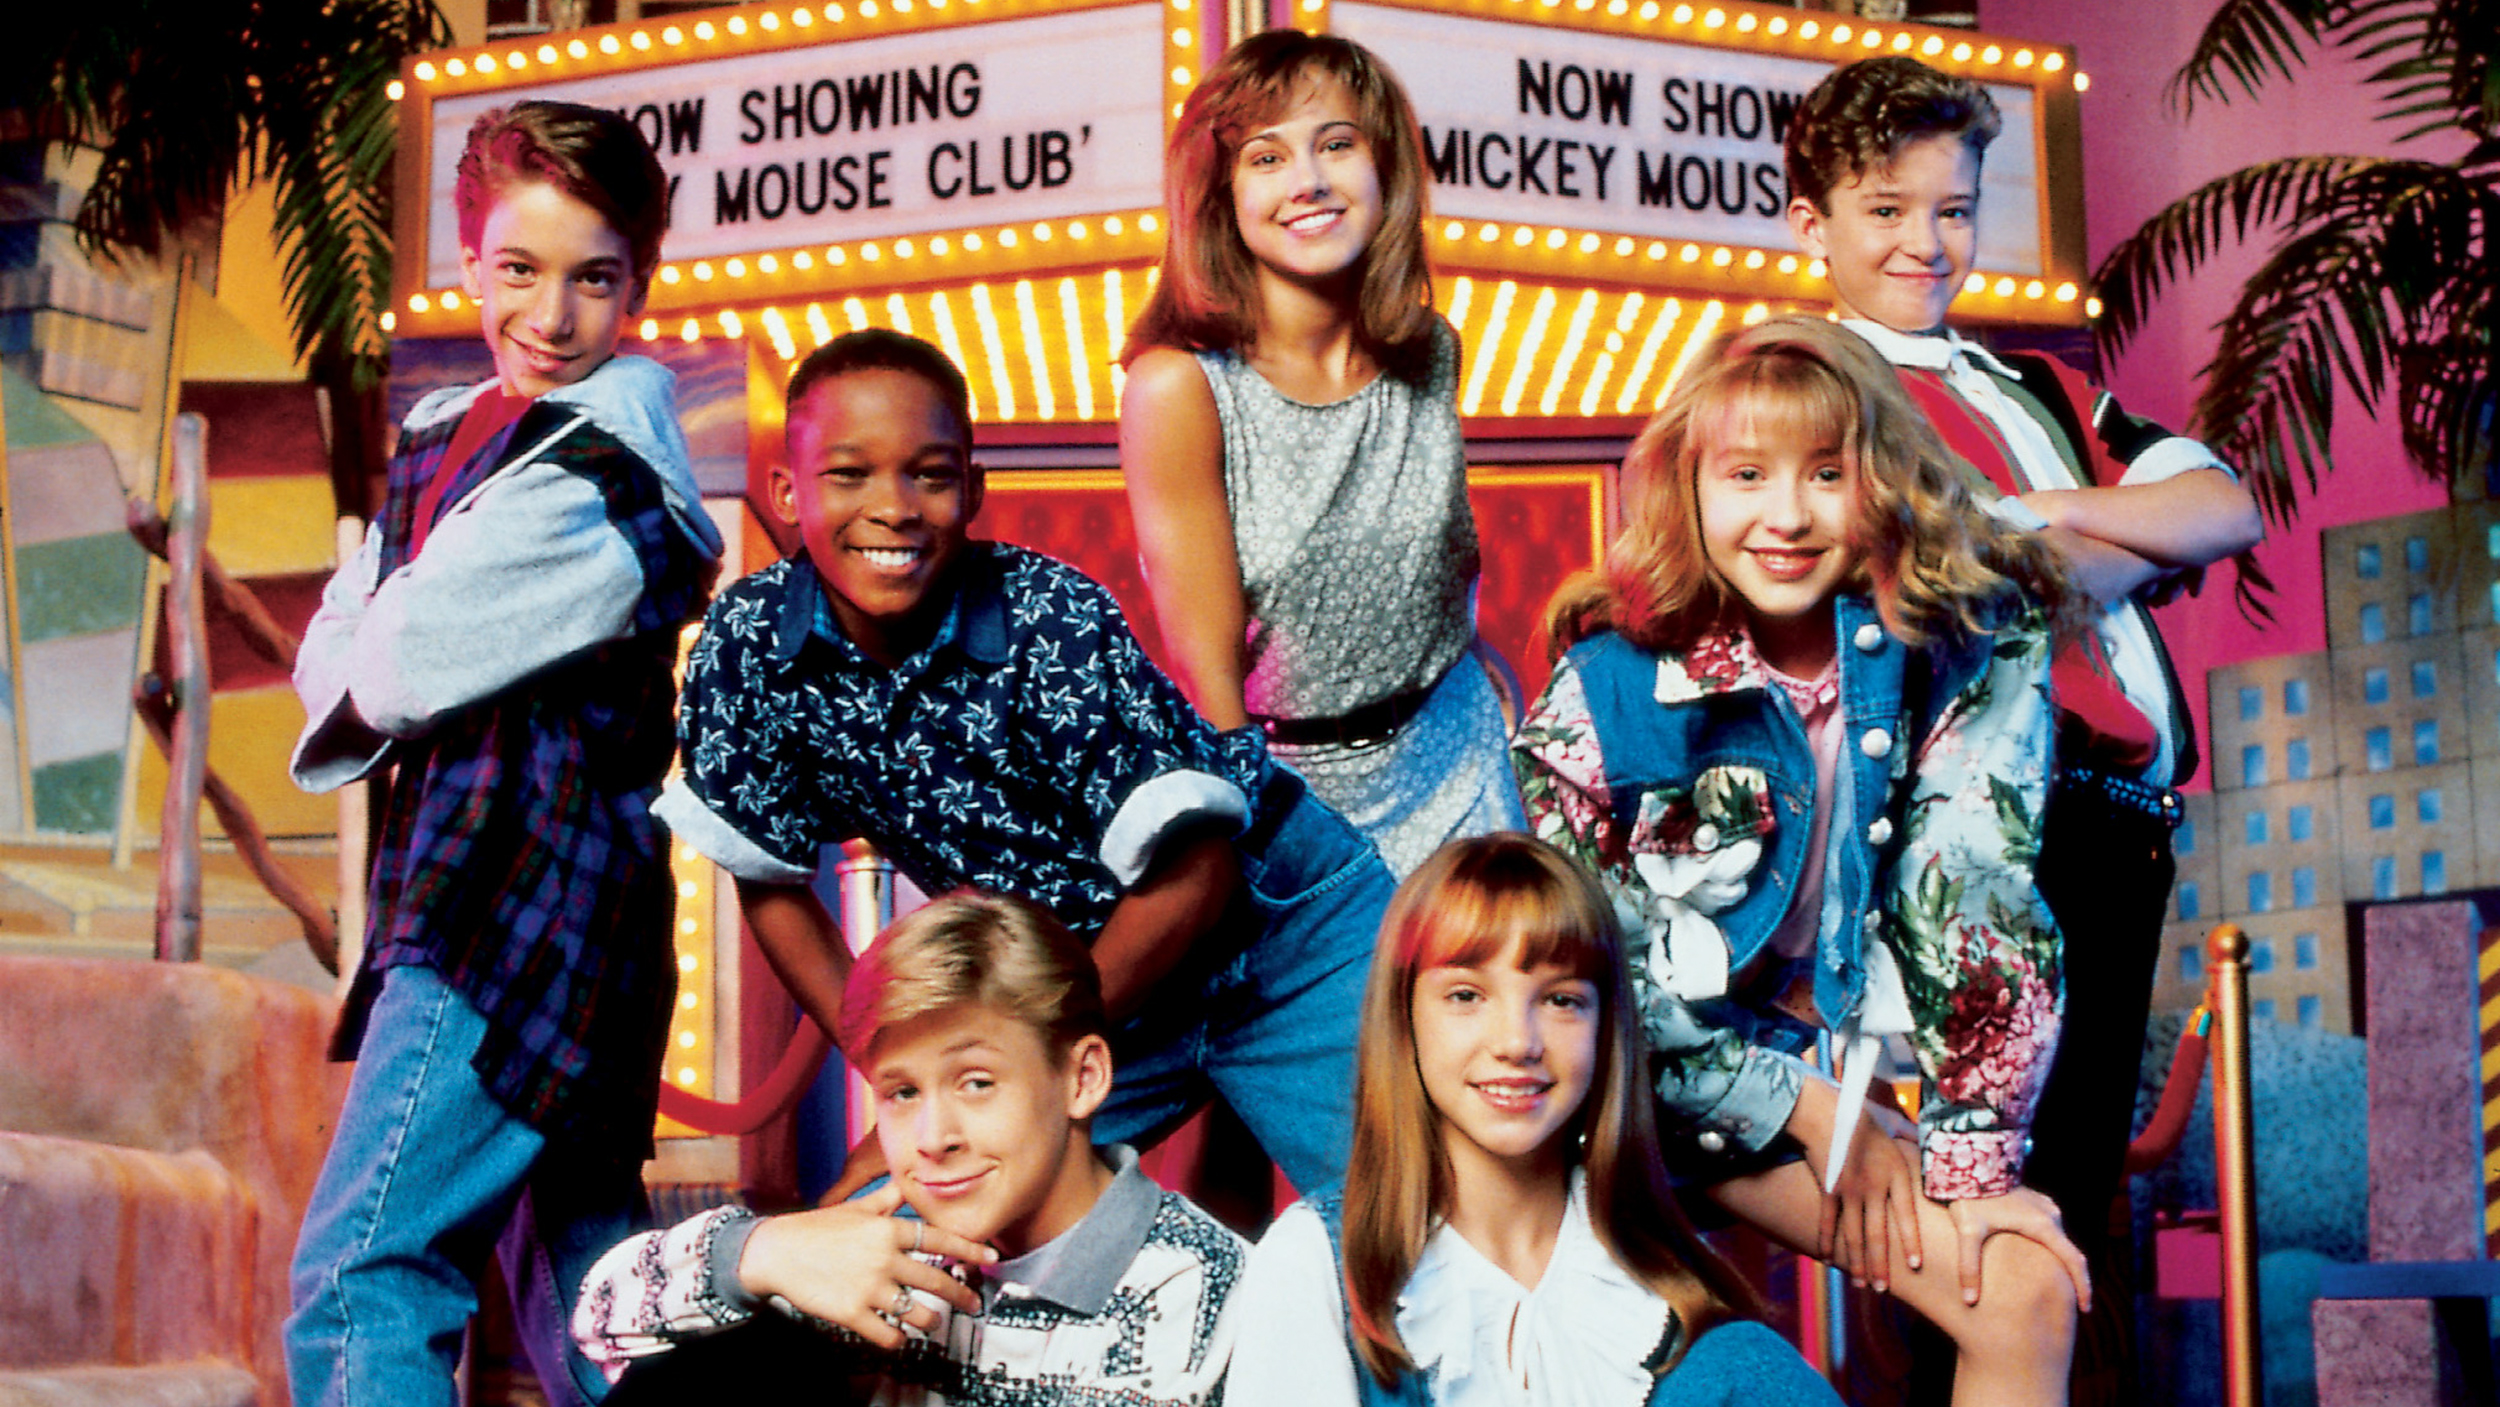 Britney Spears Is Definitely Down For A Mickey Mouse Club Reunion